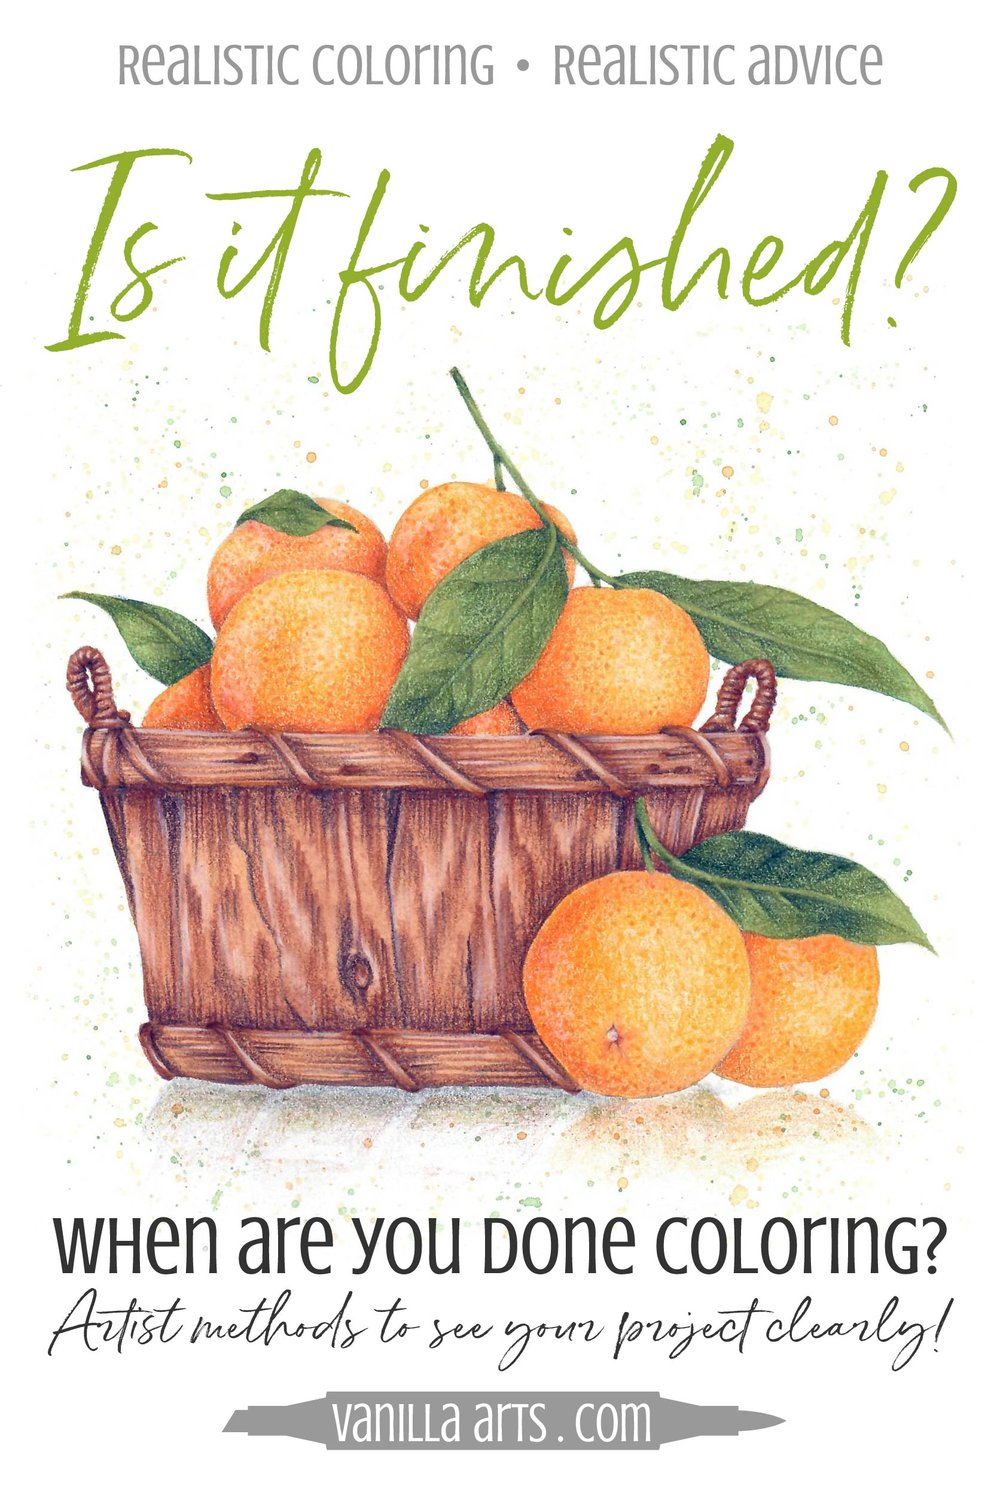 You need a good eye and instinct to know when your Copic or colored pencil project is truly finished. Learn artist's methods to see your coloring projects clearly. | VanillaArts.com | #copic #coloredpencil #adultcoloring #realism